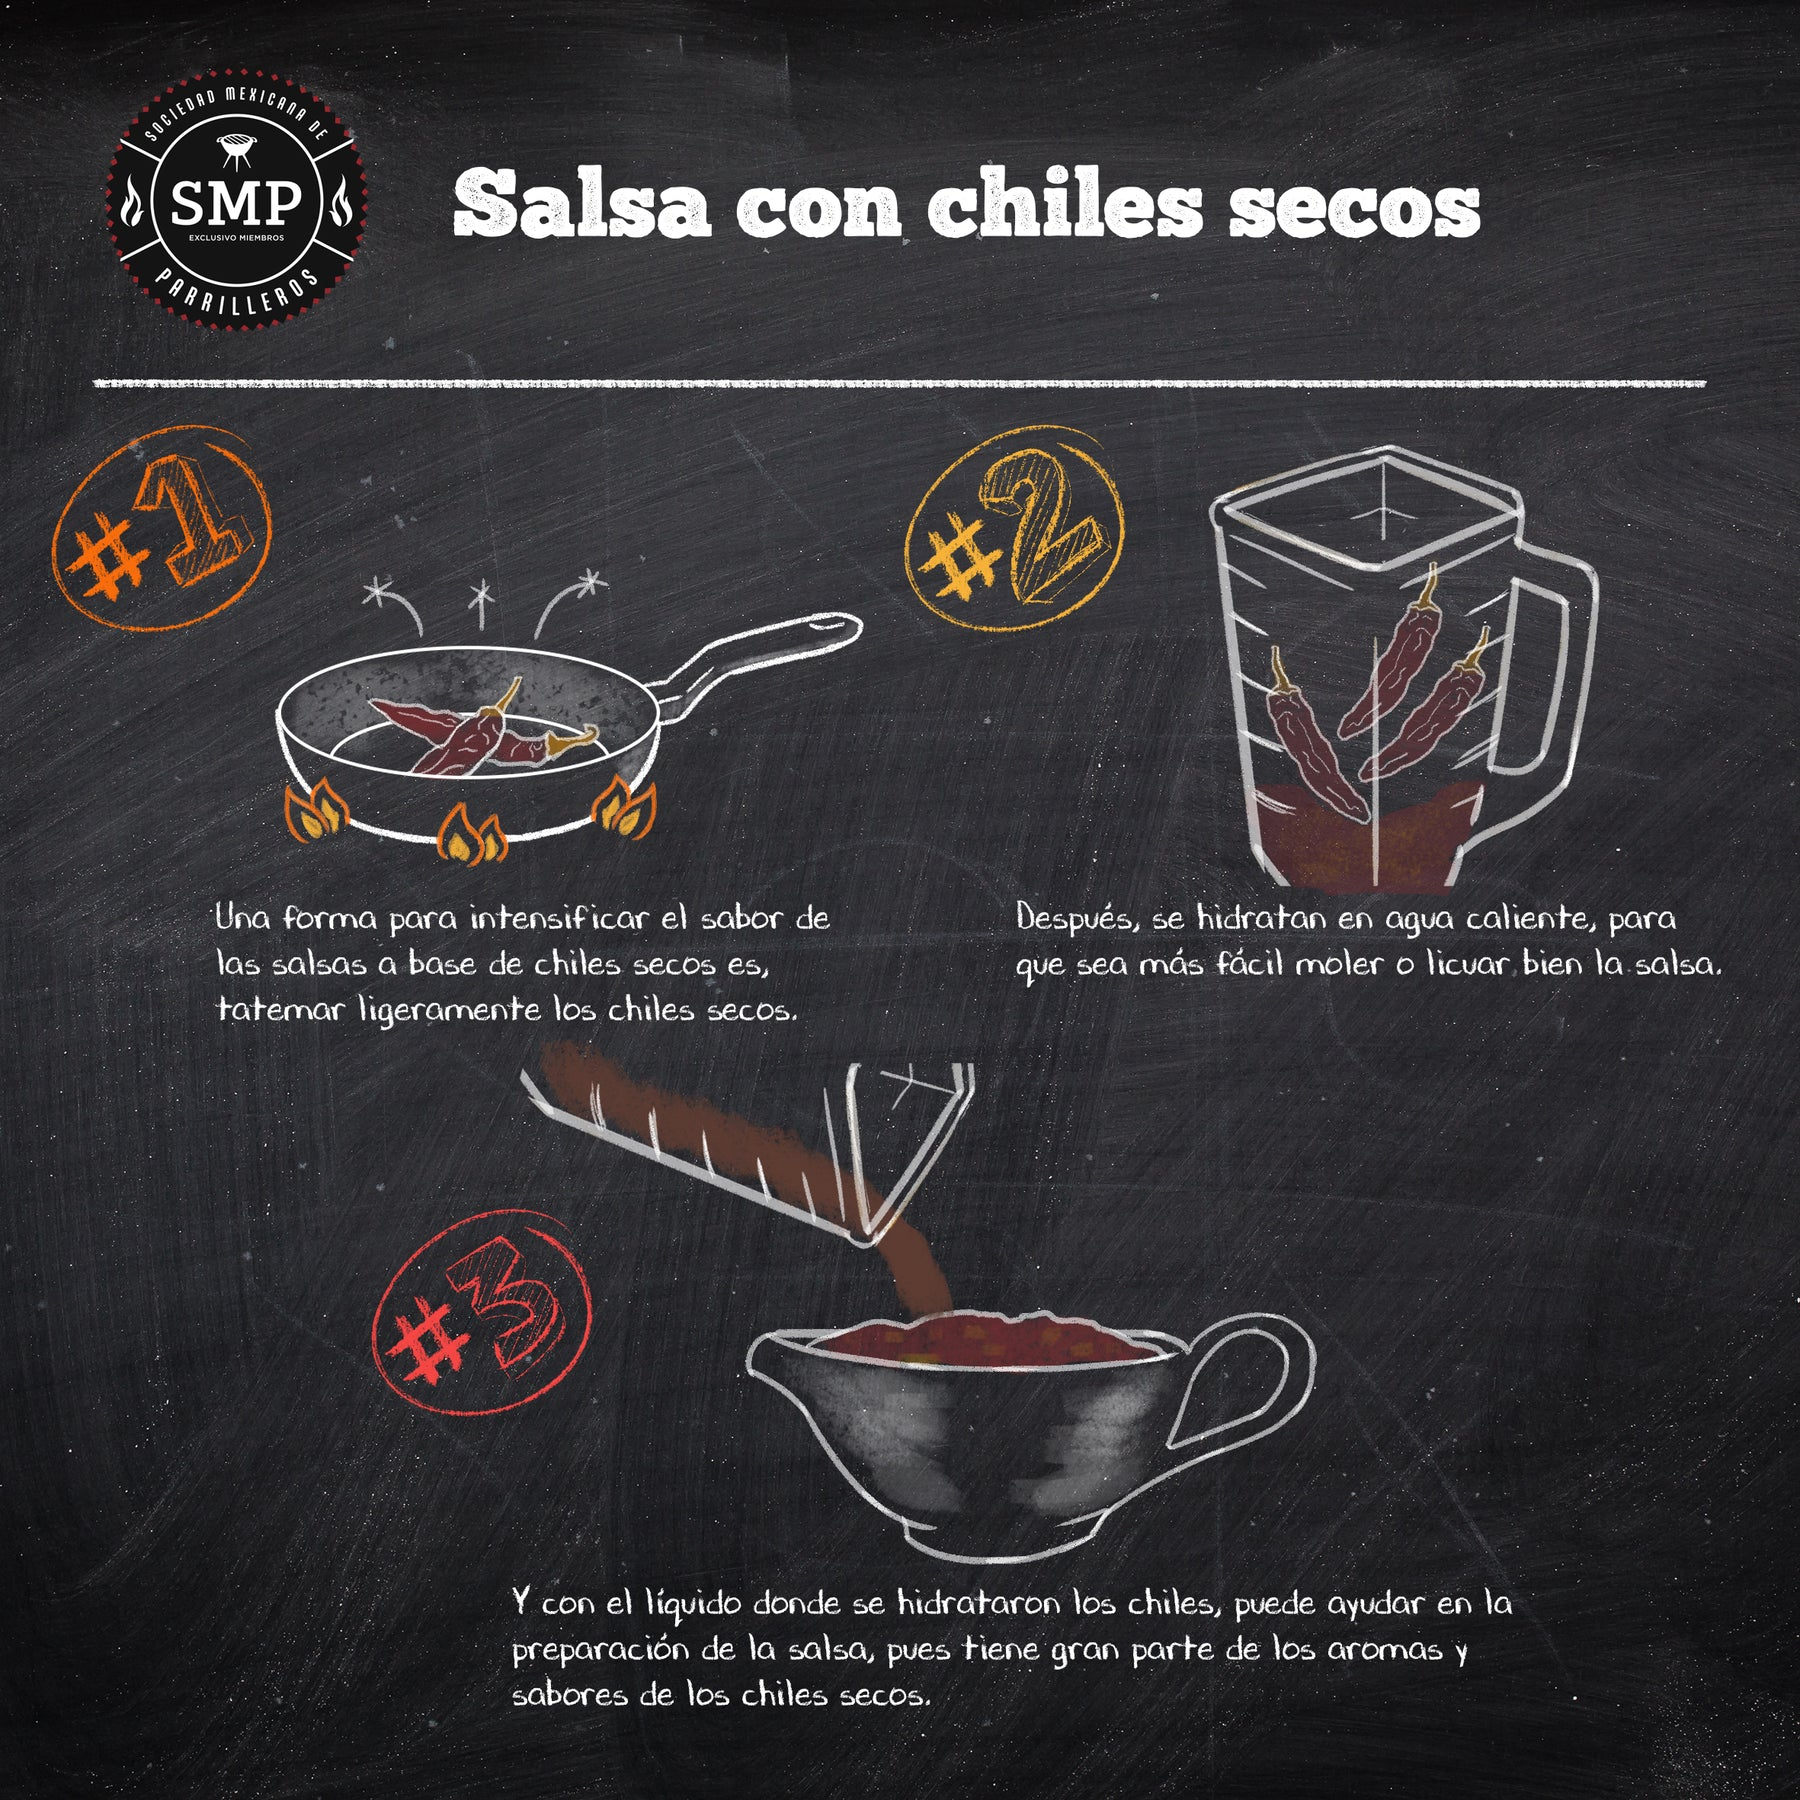 Salsa con chiles secos